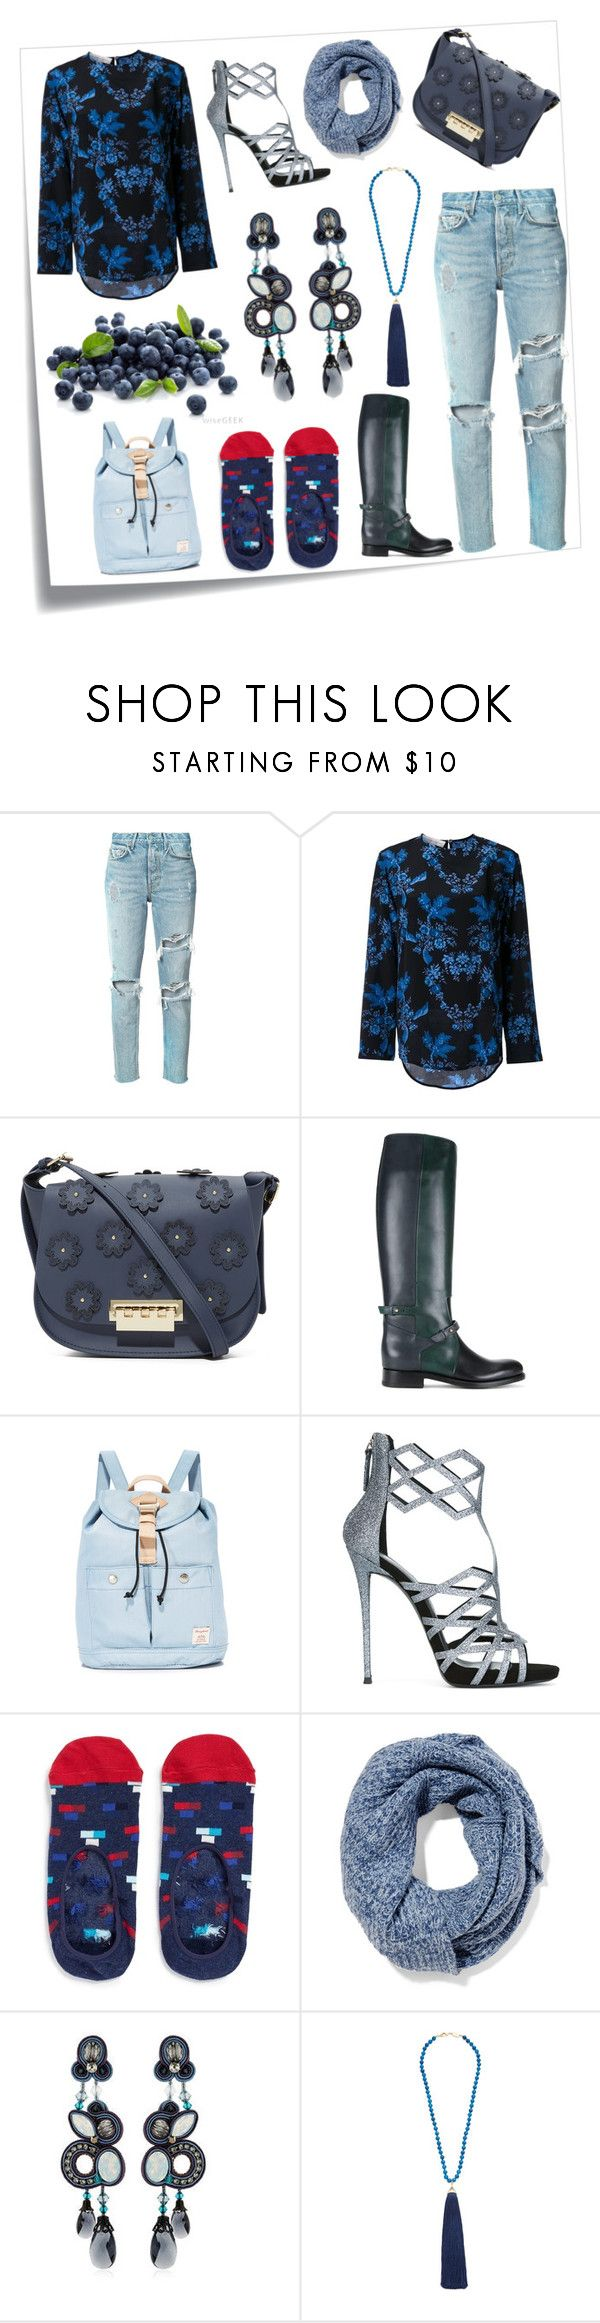 """Passion for fashion"" by emmamegan-5678 ❤ liked on Polyvore featuring Post-It, GRLFRND, STELLA McCARTNEY, ZAC Zac Posen, Pierre Hardy, Doughnut, Giuseppe Zanotti, Happy Socks, Duffy and Dori Csengeri"